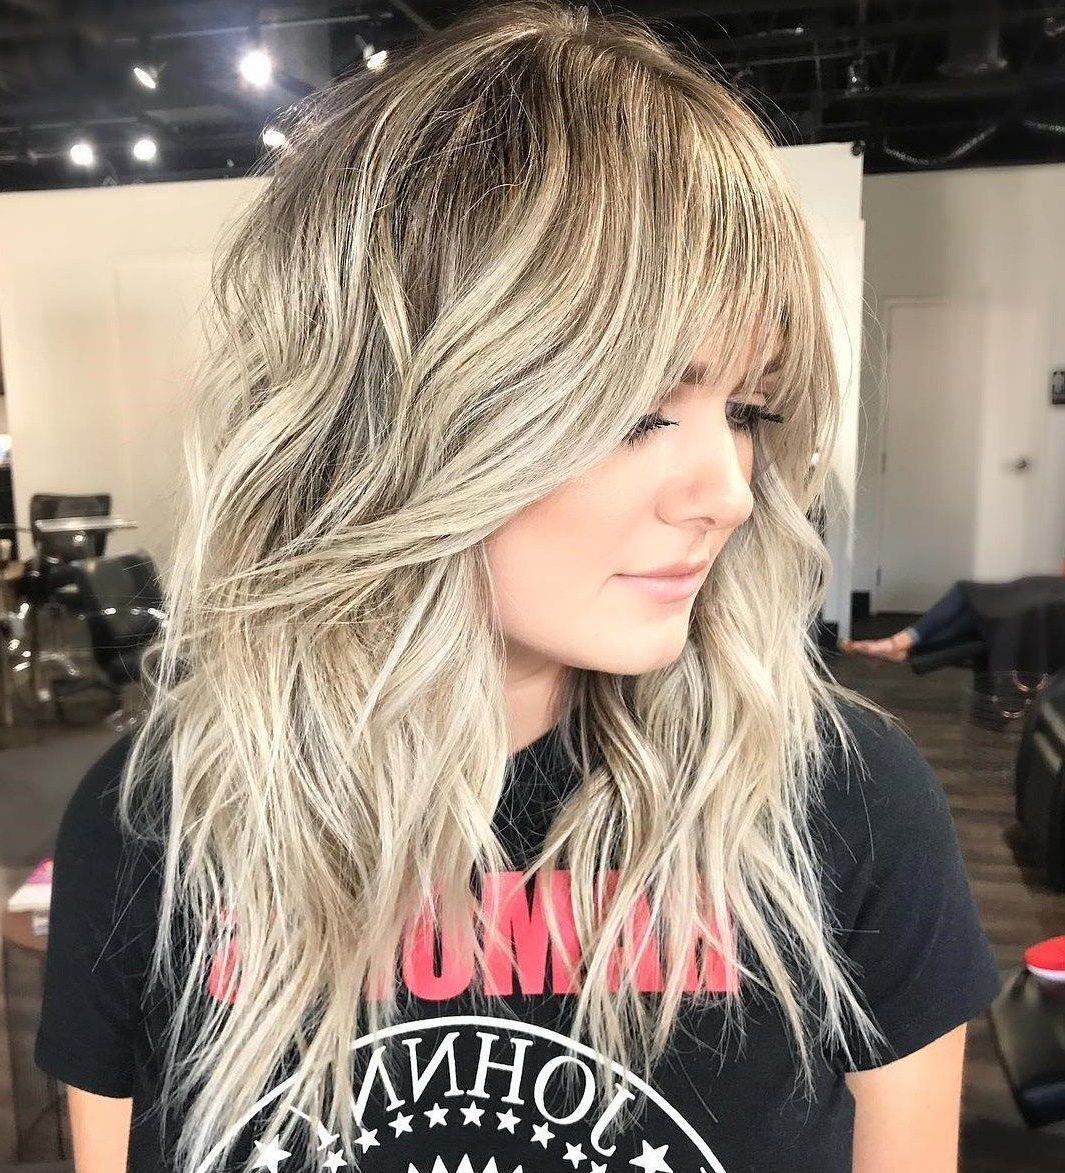 Blonde #long #shag #fine #hair #forlong Blonde Shag For Fine Pertaining To 2019 Longer Tousled Caramel Blonde Shag Haircuts (View 2 of 20)